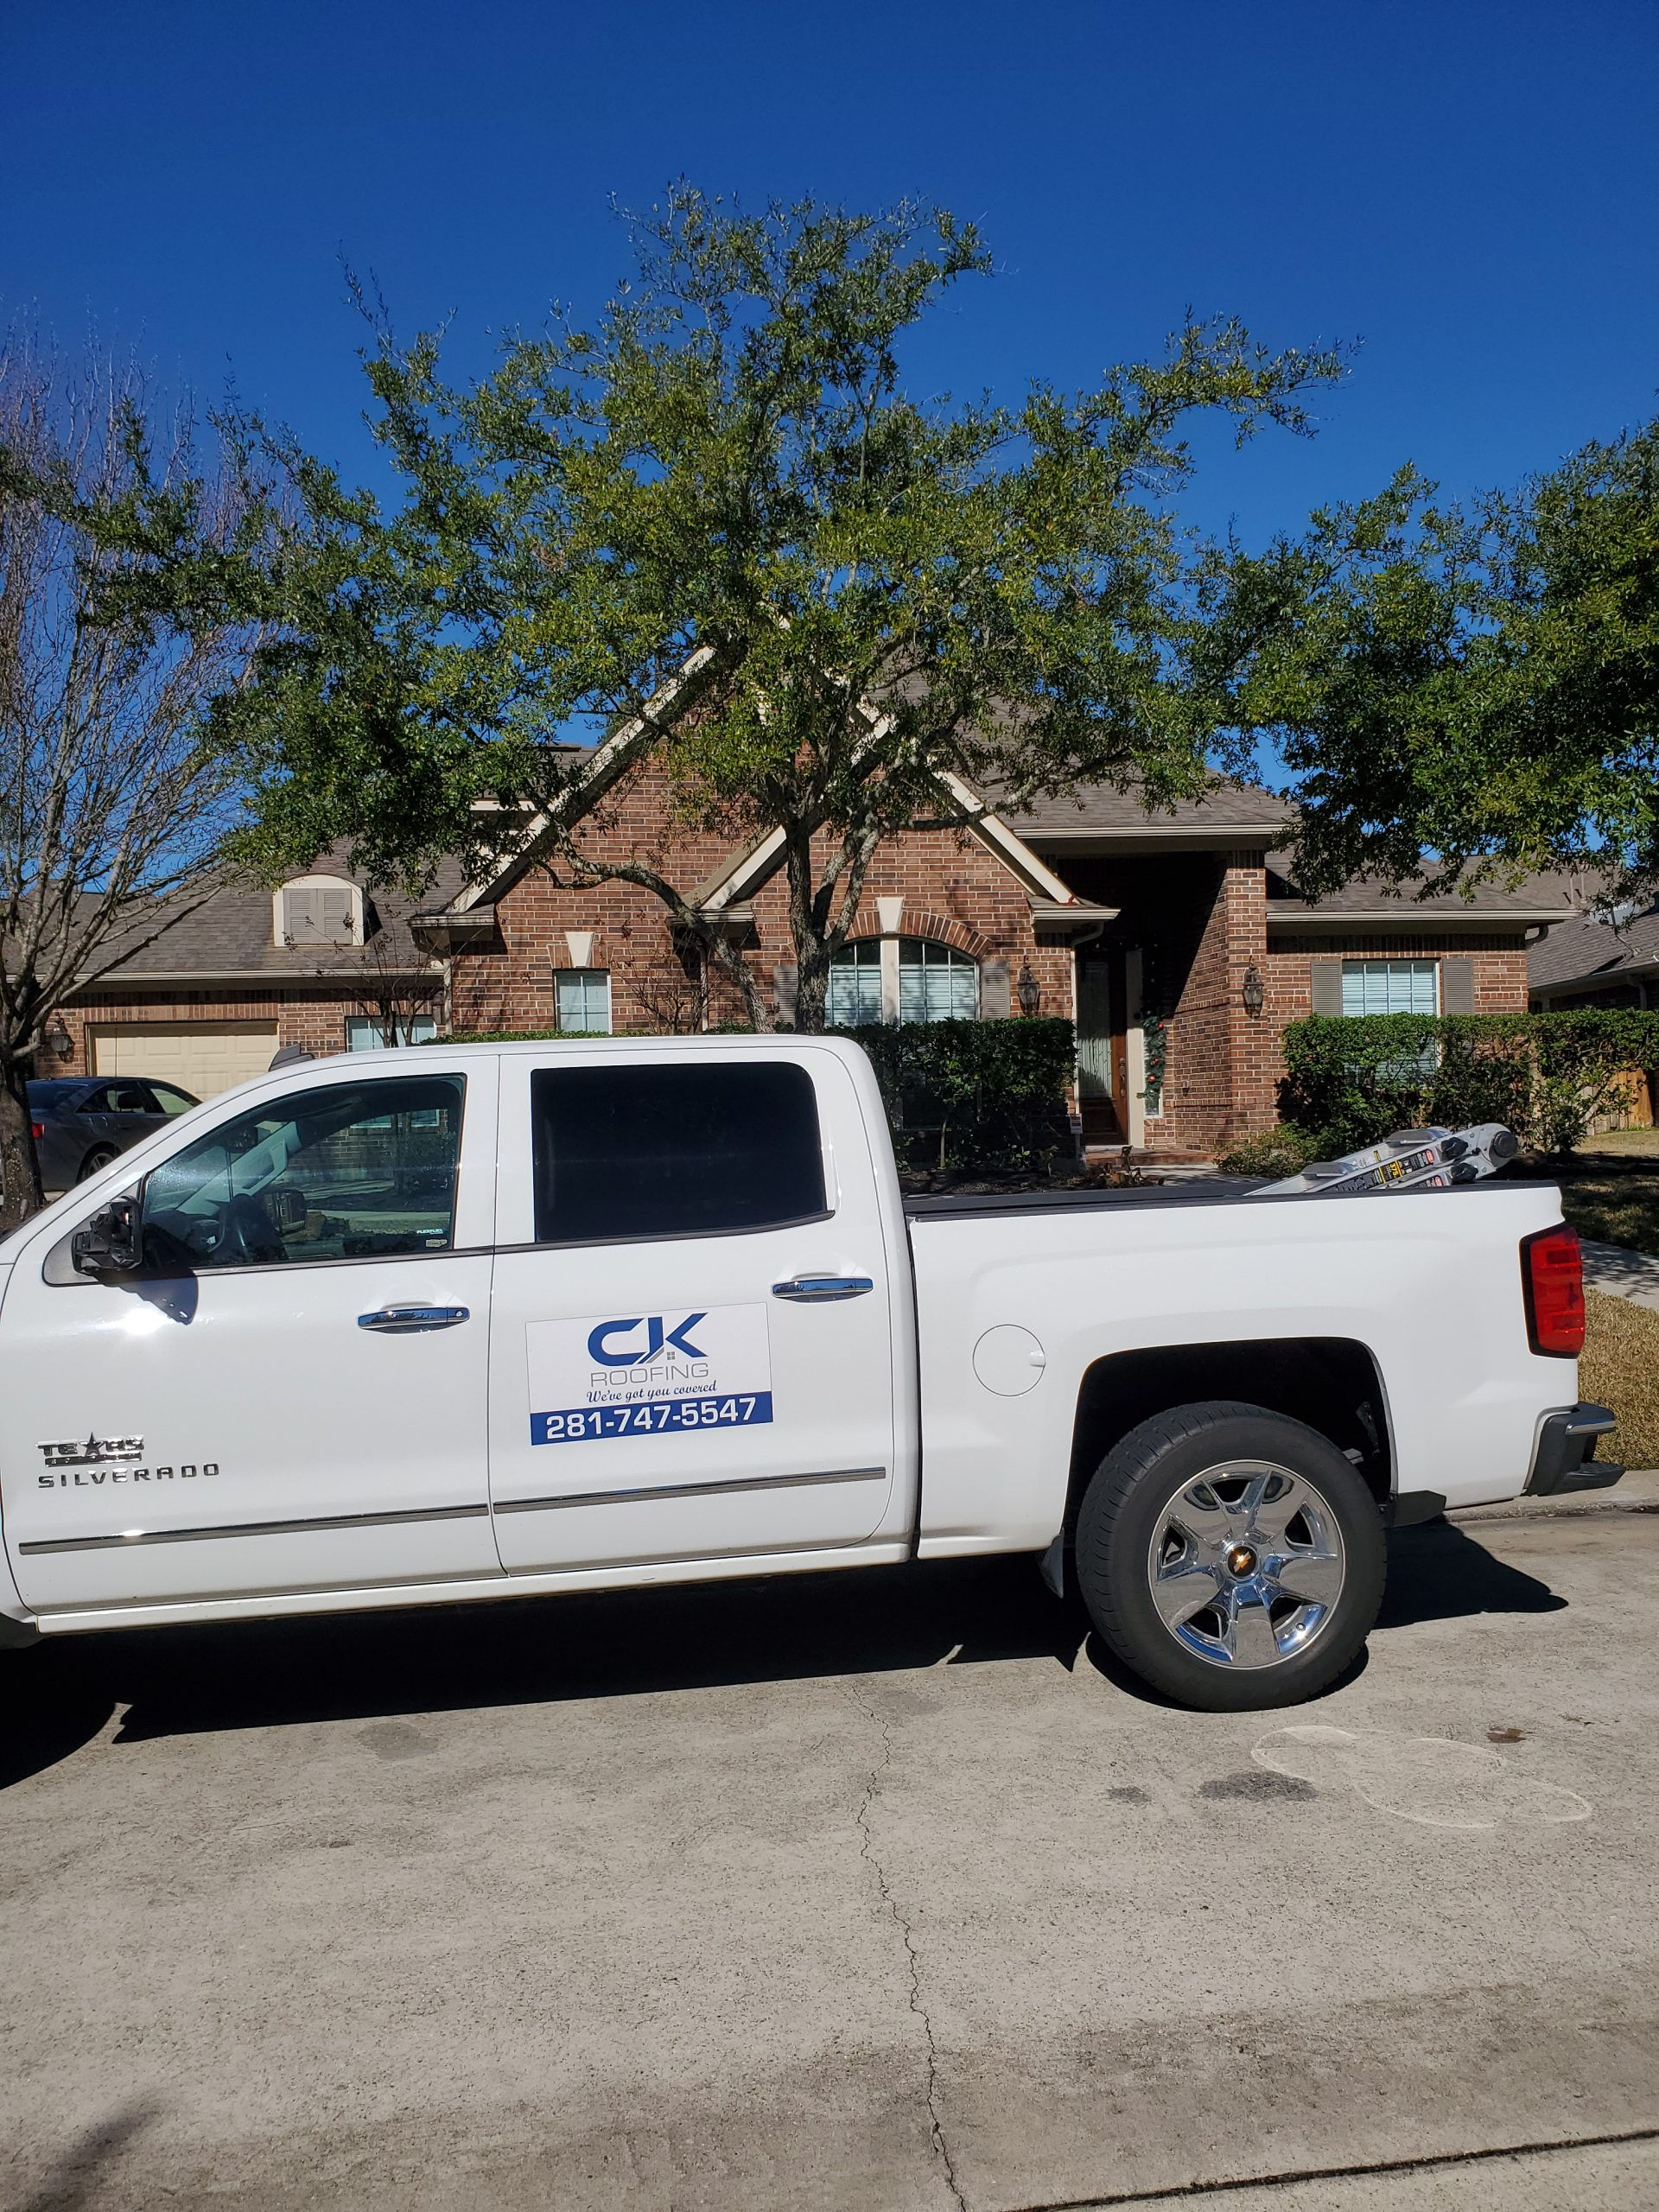 CK roofing truck in front of a house